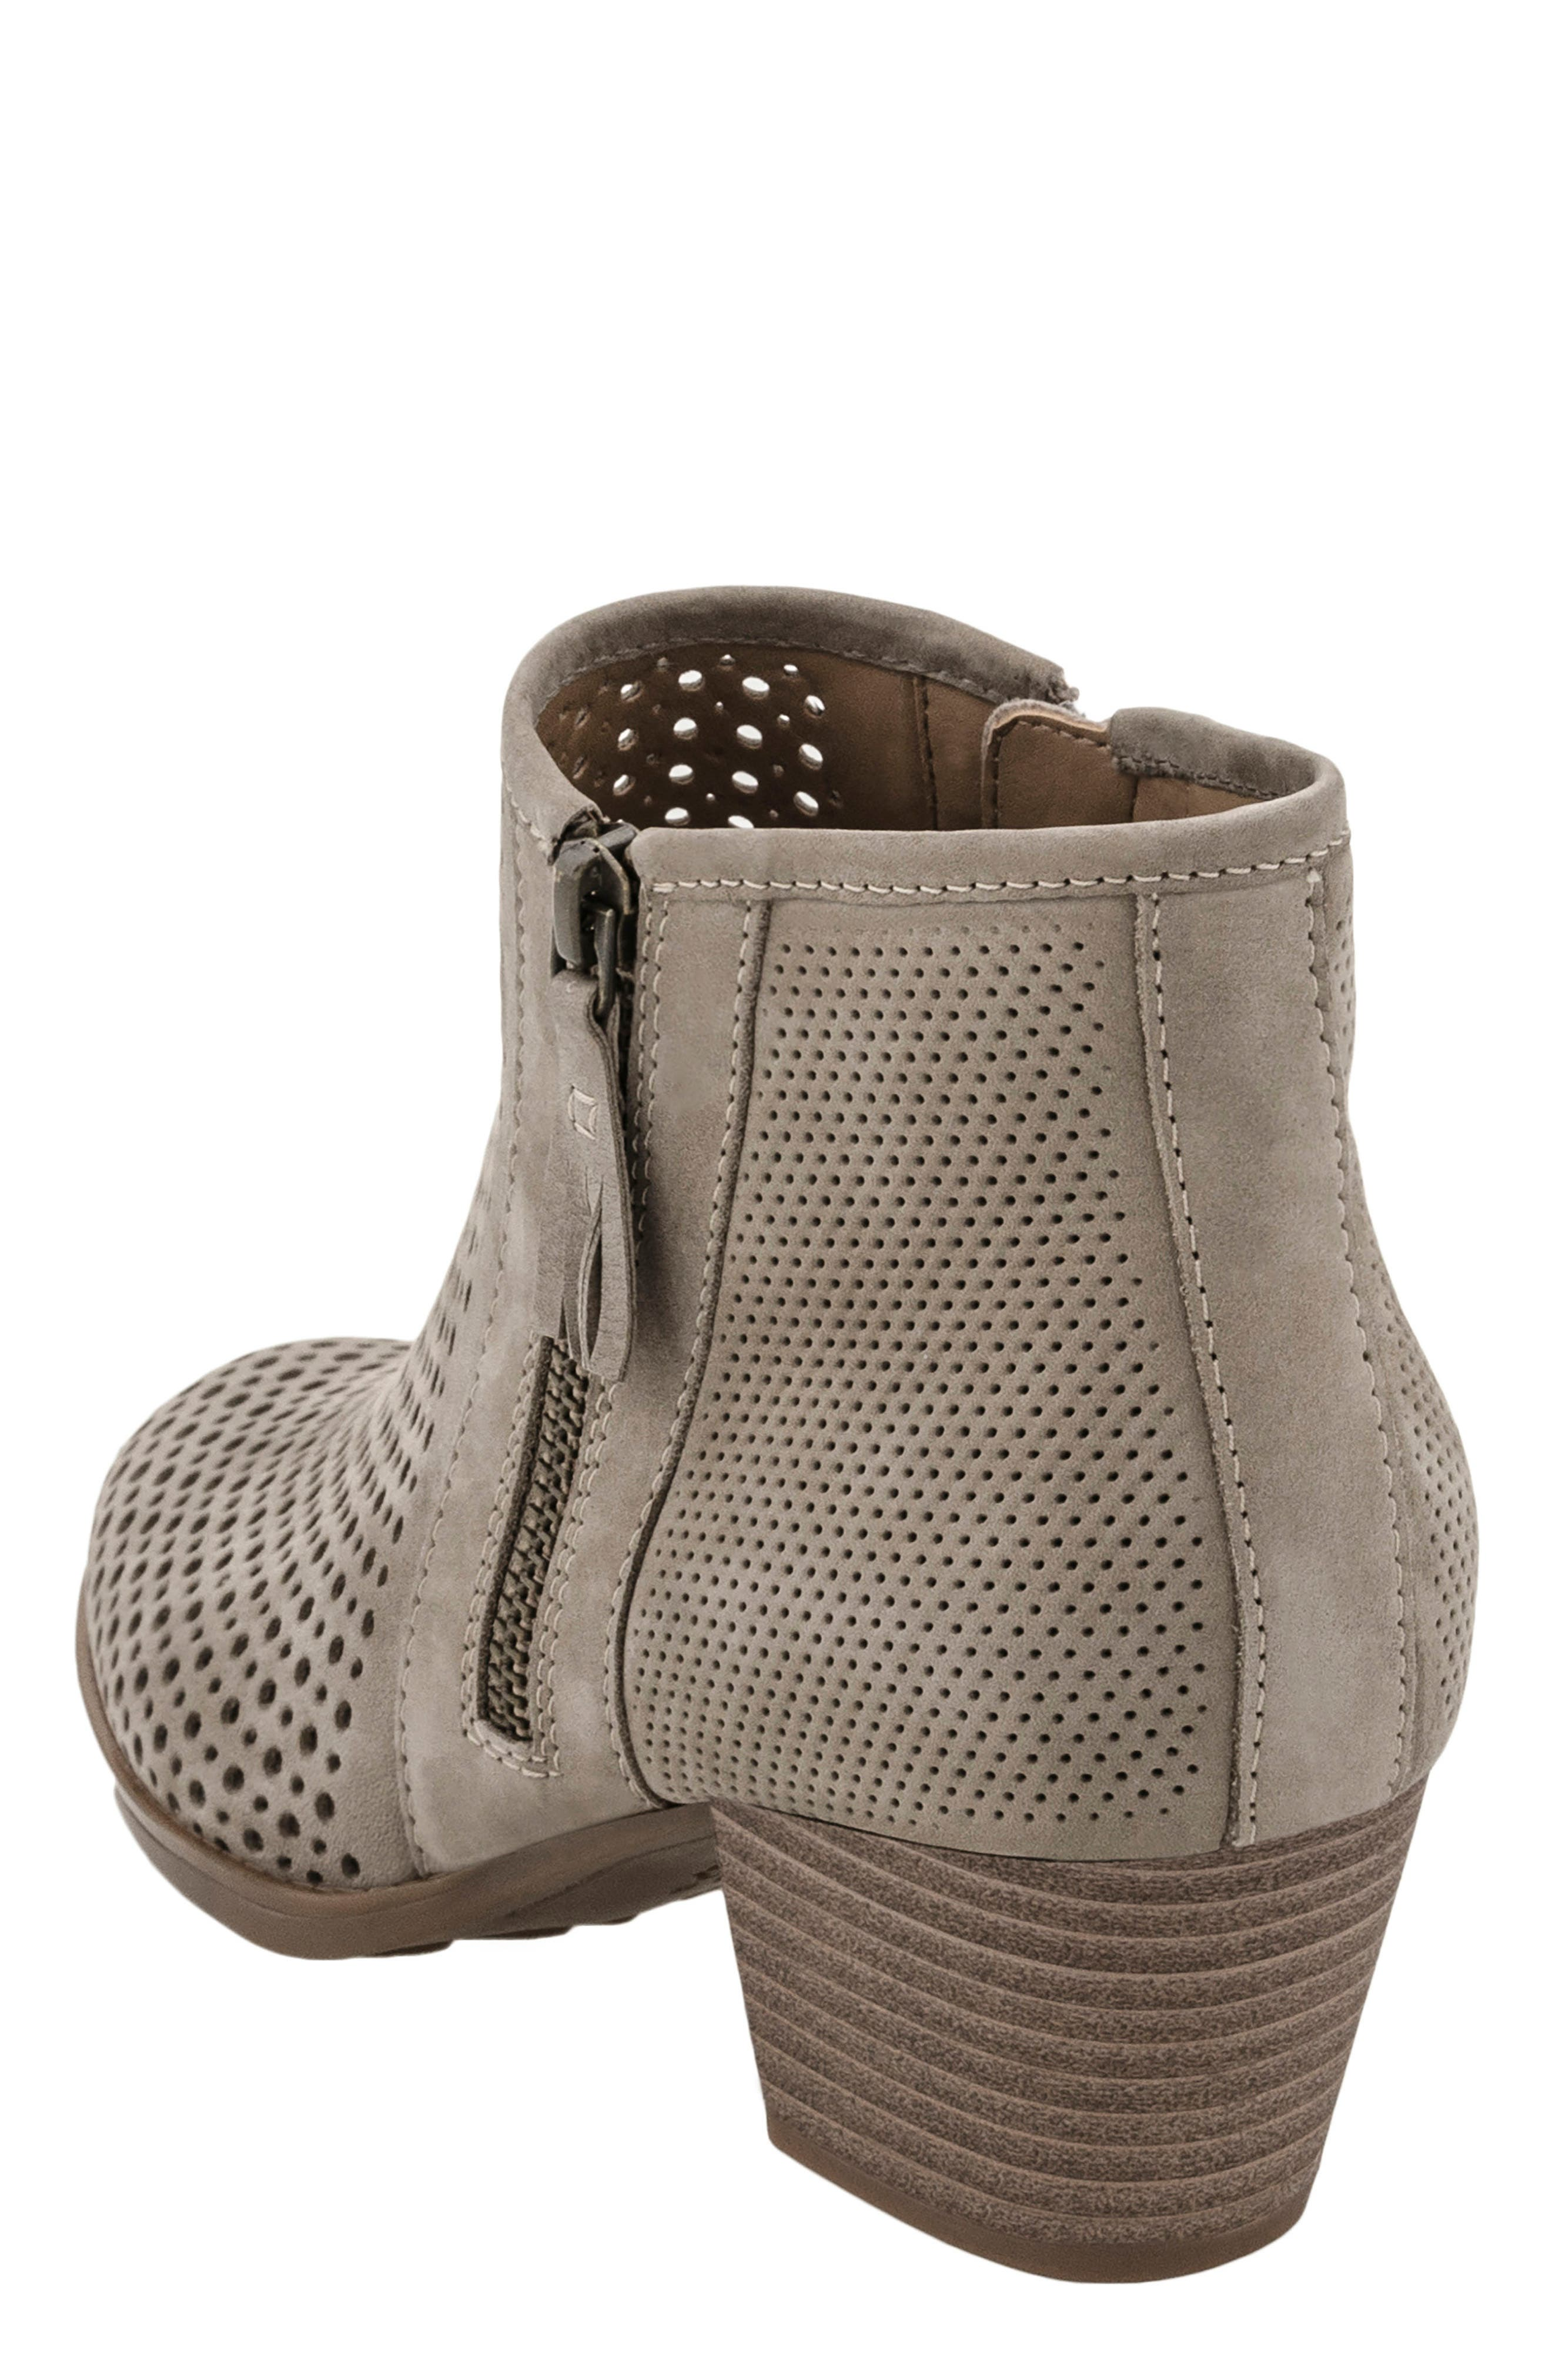 Pineberry Bootie,                             Alternate thumbnail 6, color,